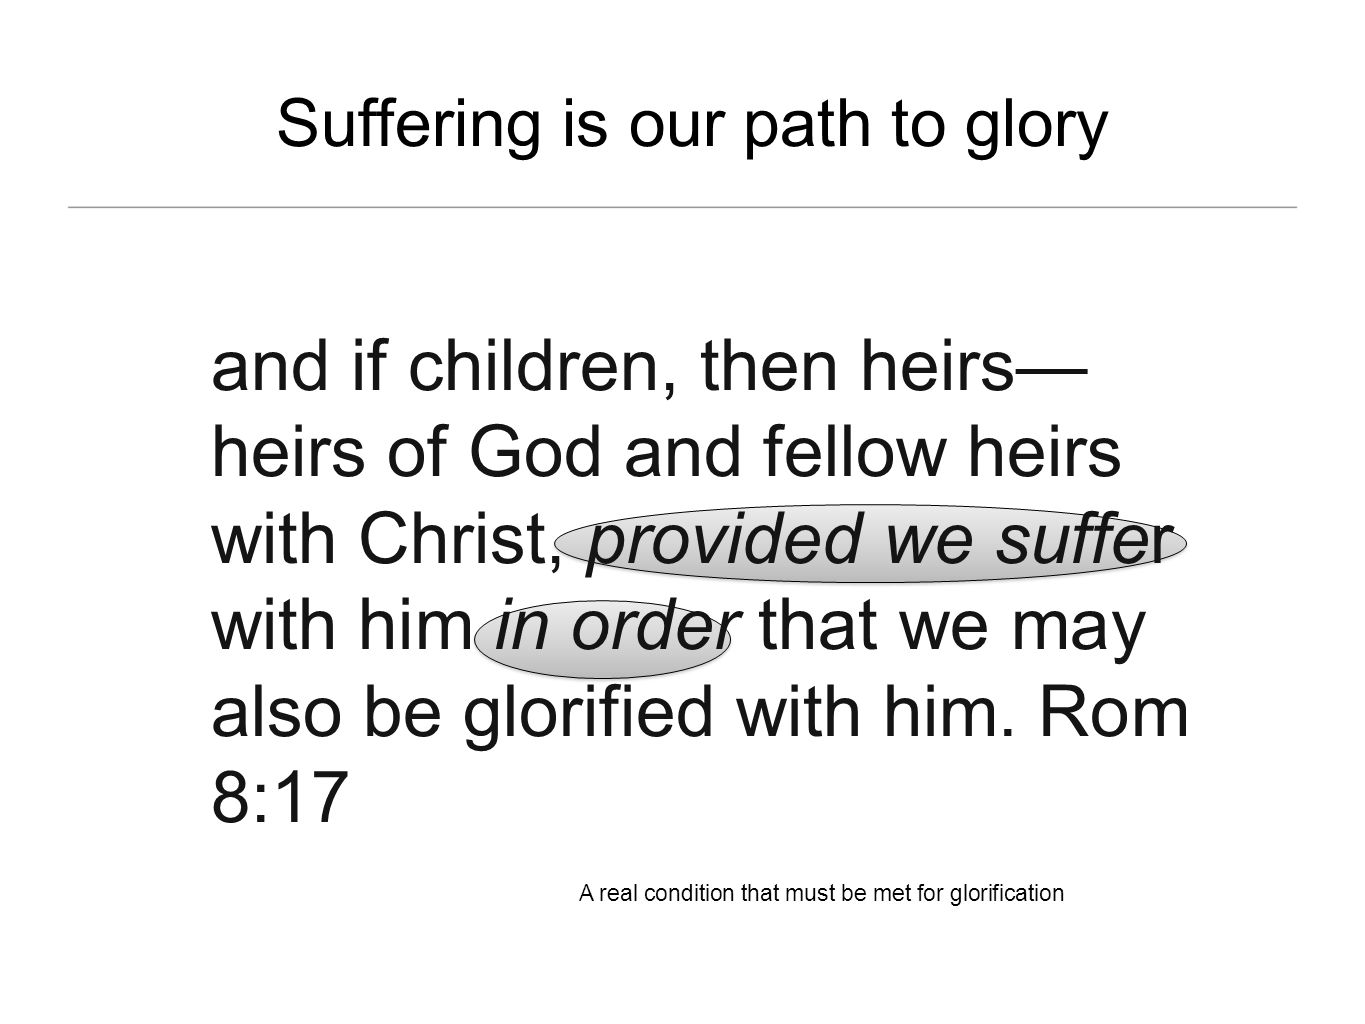 Suffering is our path to glory and if children, then heirs heirs of God and fellow heirs with Christ, provided we suffer with him in order that we may